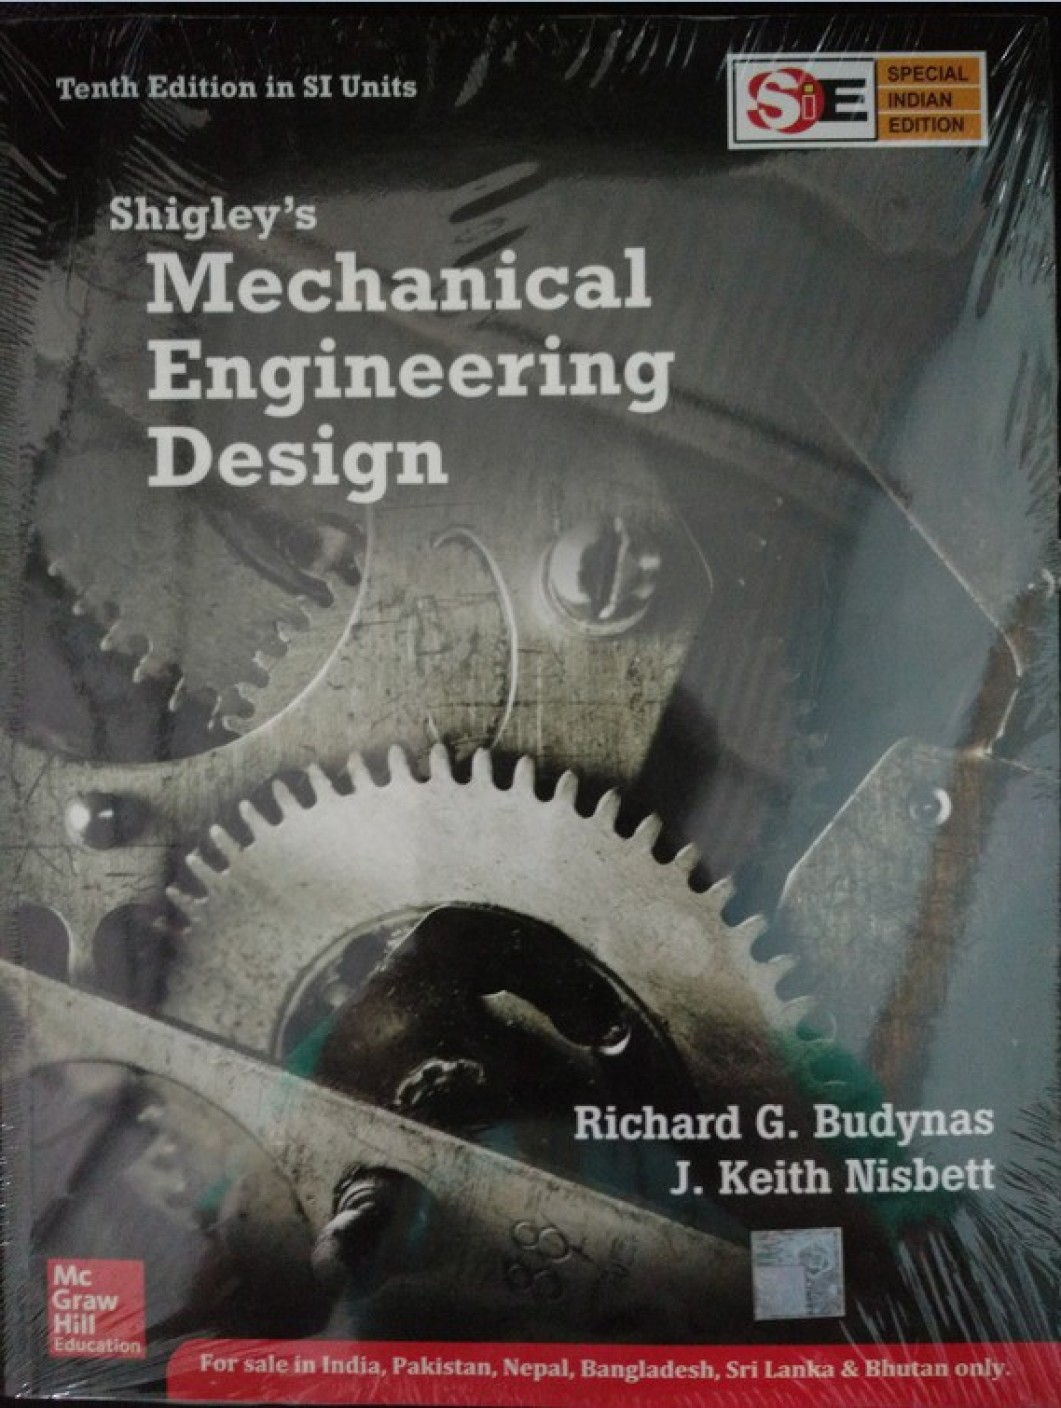 Shigley's Mechanical Engineering Design 10 Edition - Buy ...